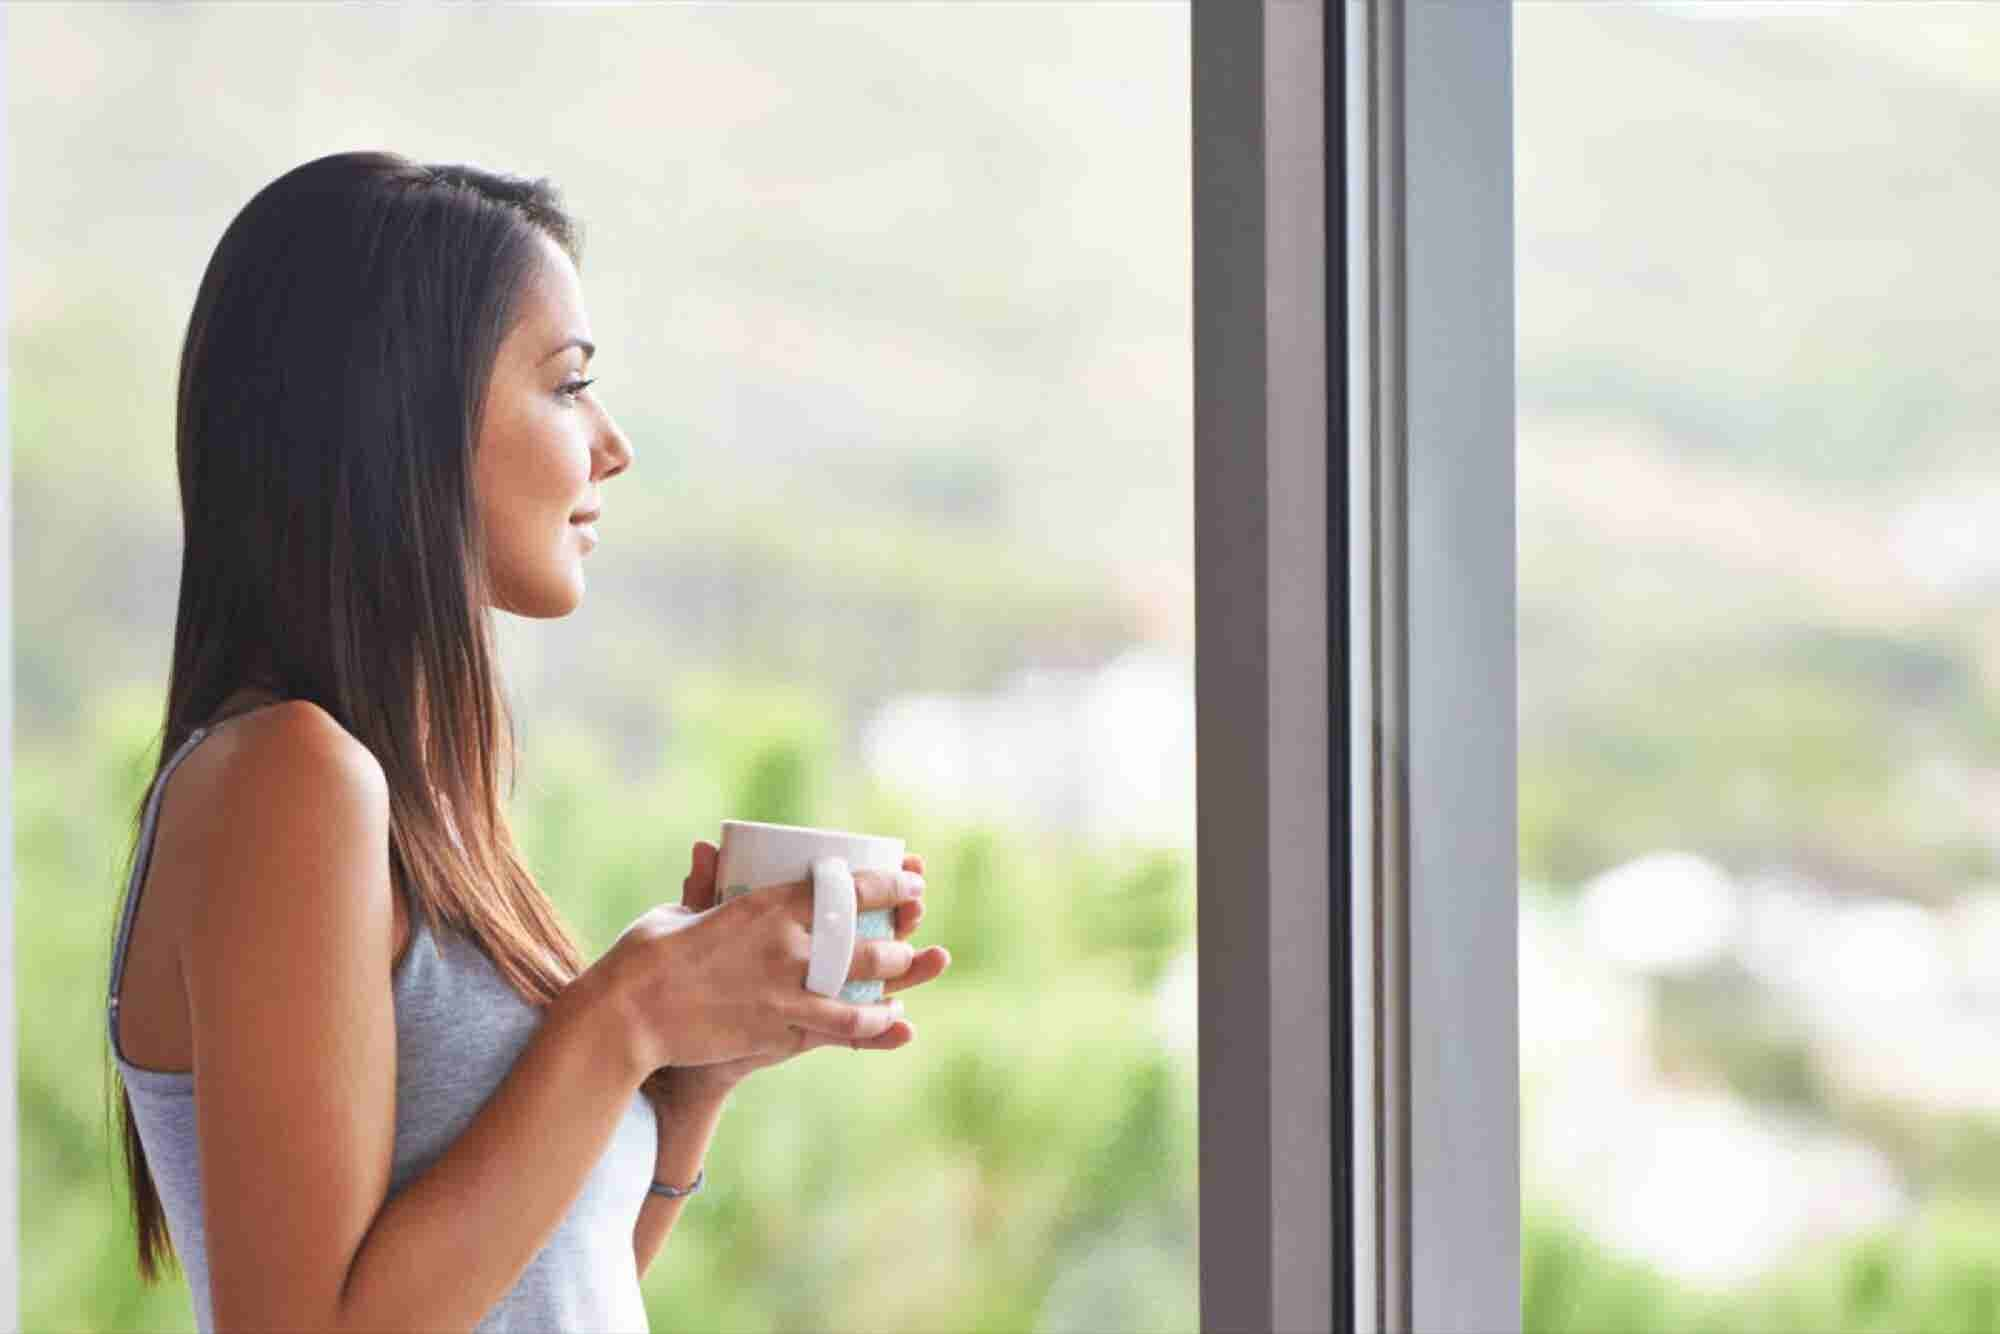 8 Actions You Can Take Every Morning to Build Your Side Business Faster